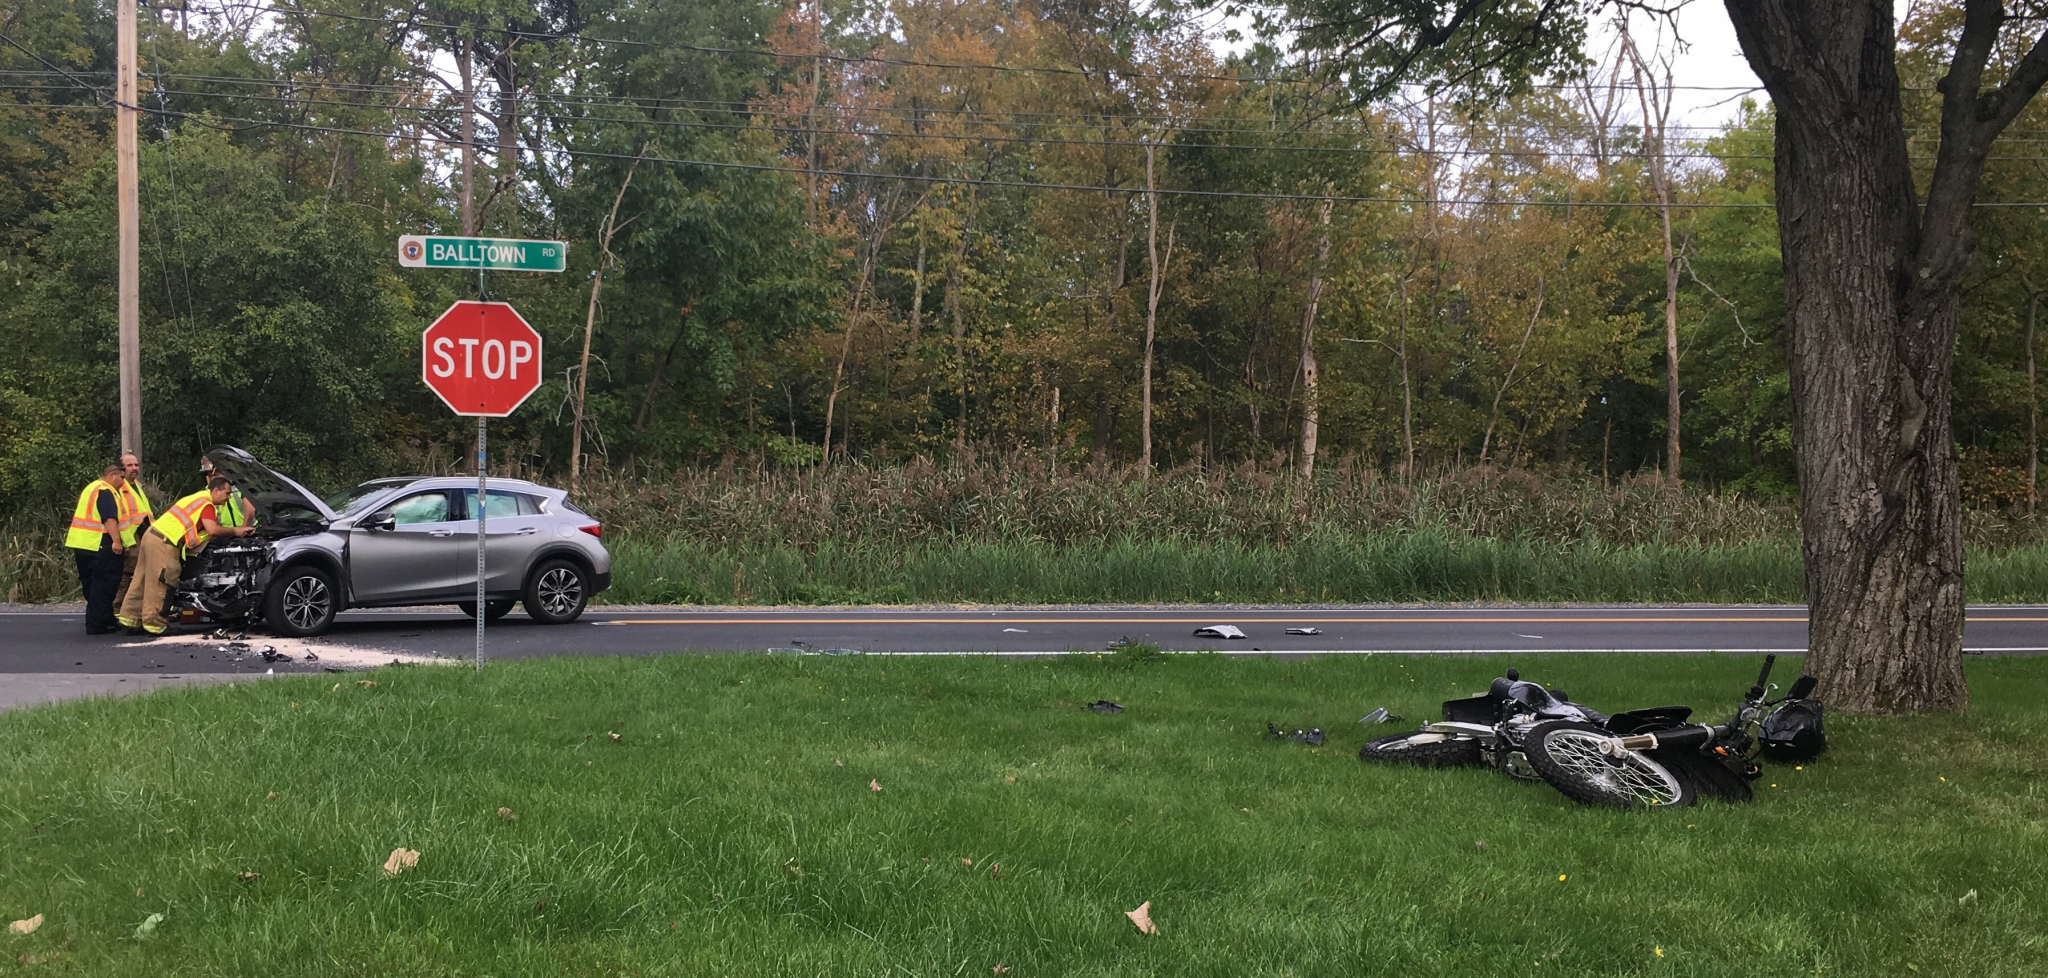 Motorcyclist injured in collision with SUV on Balltown Road - Times Union